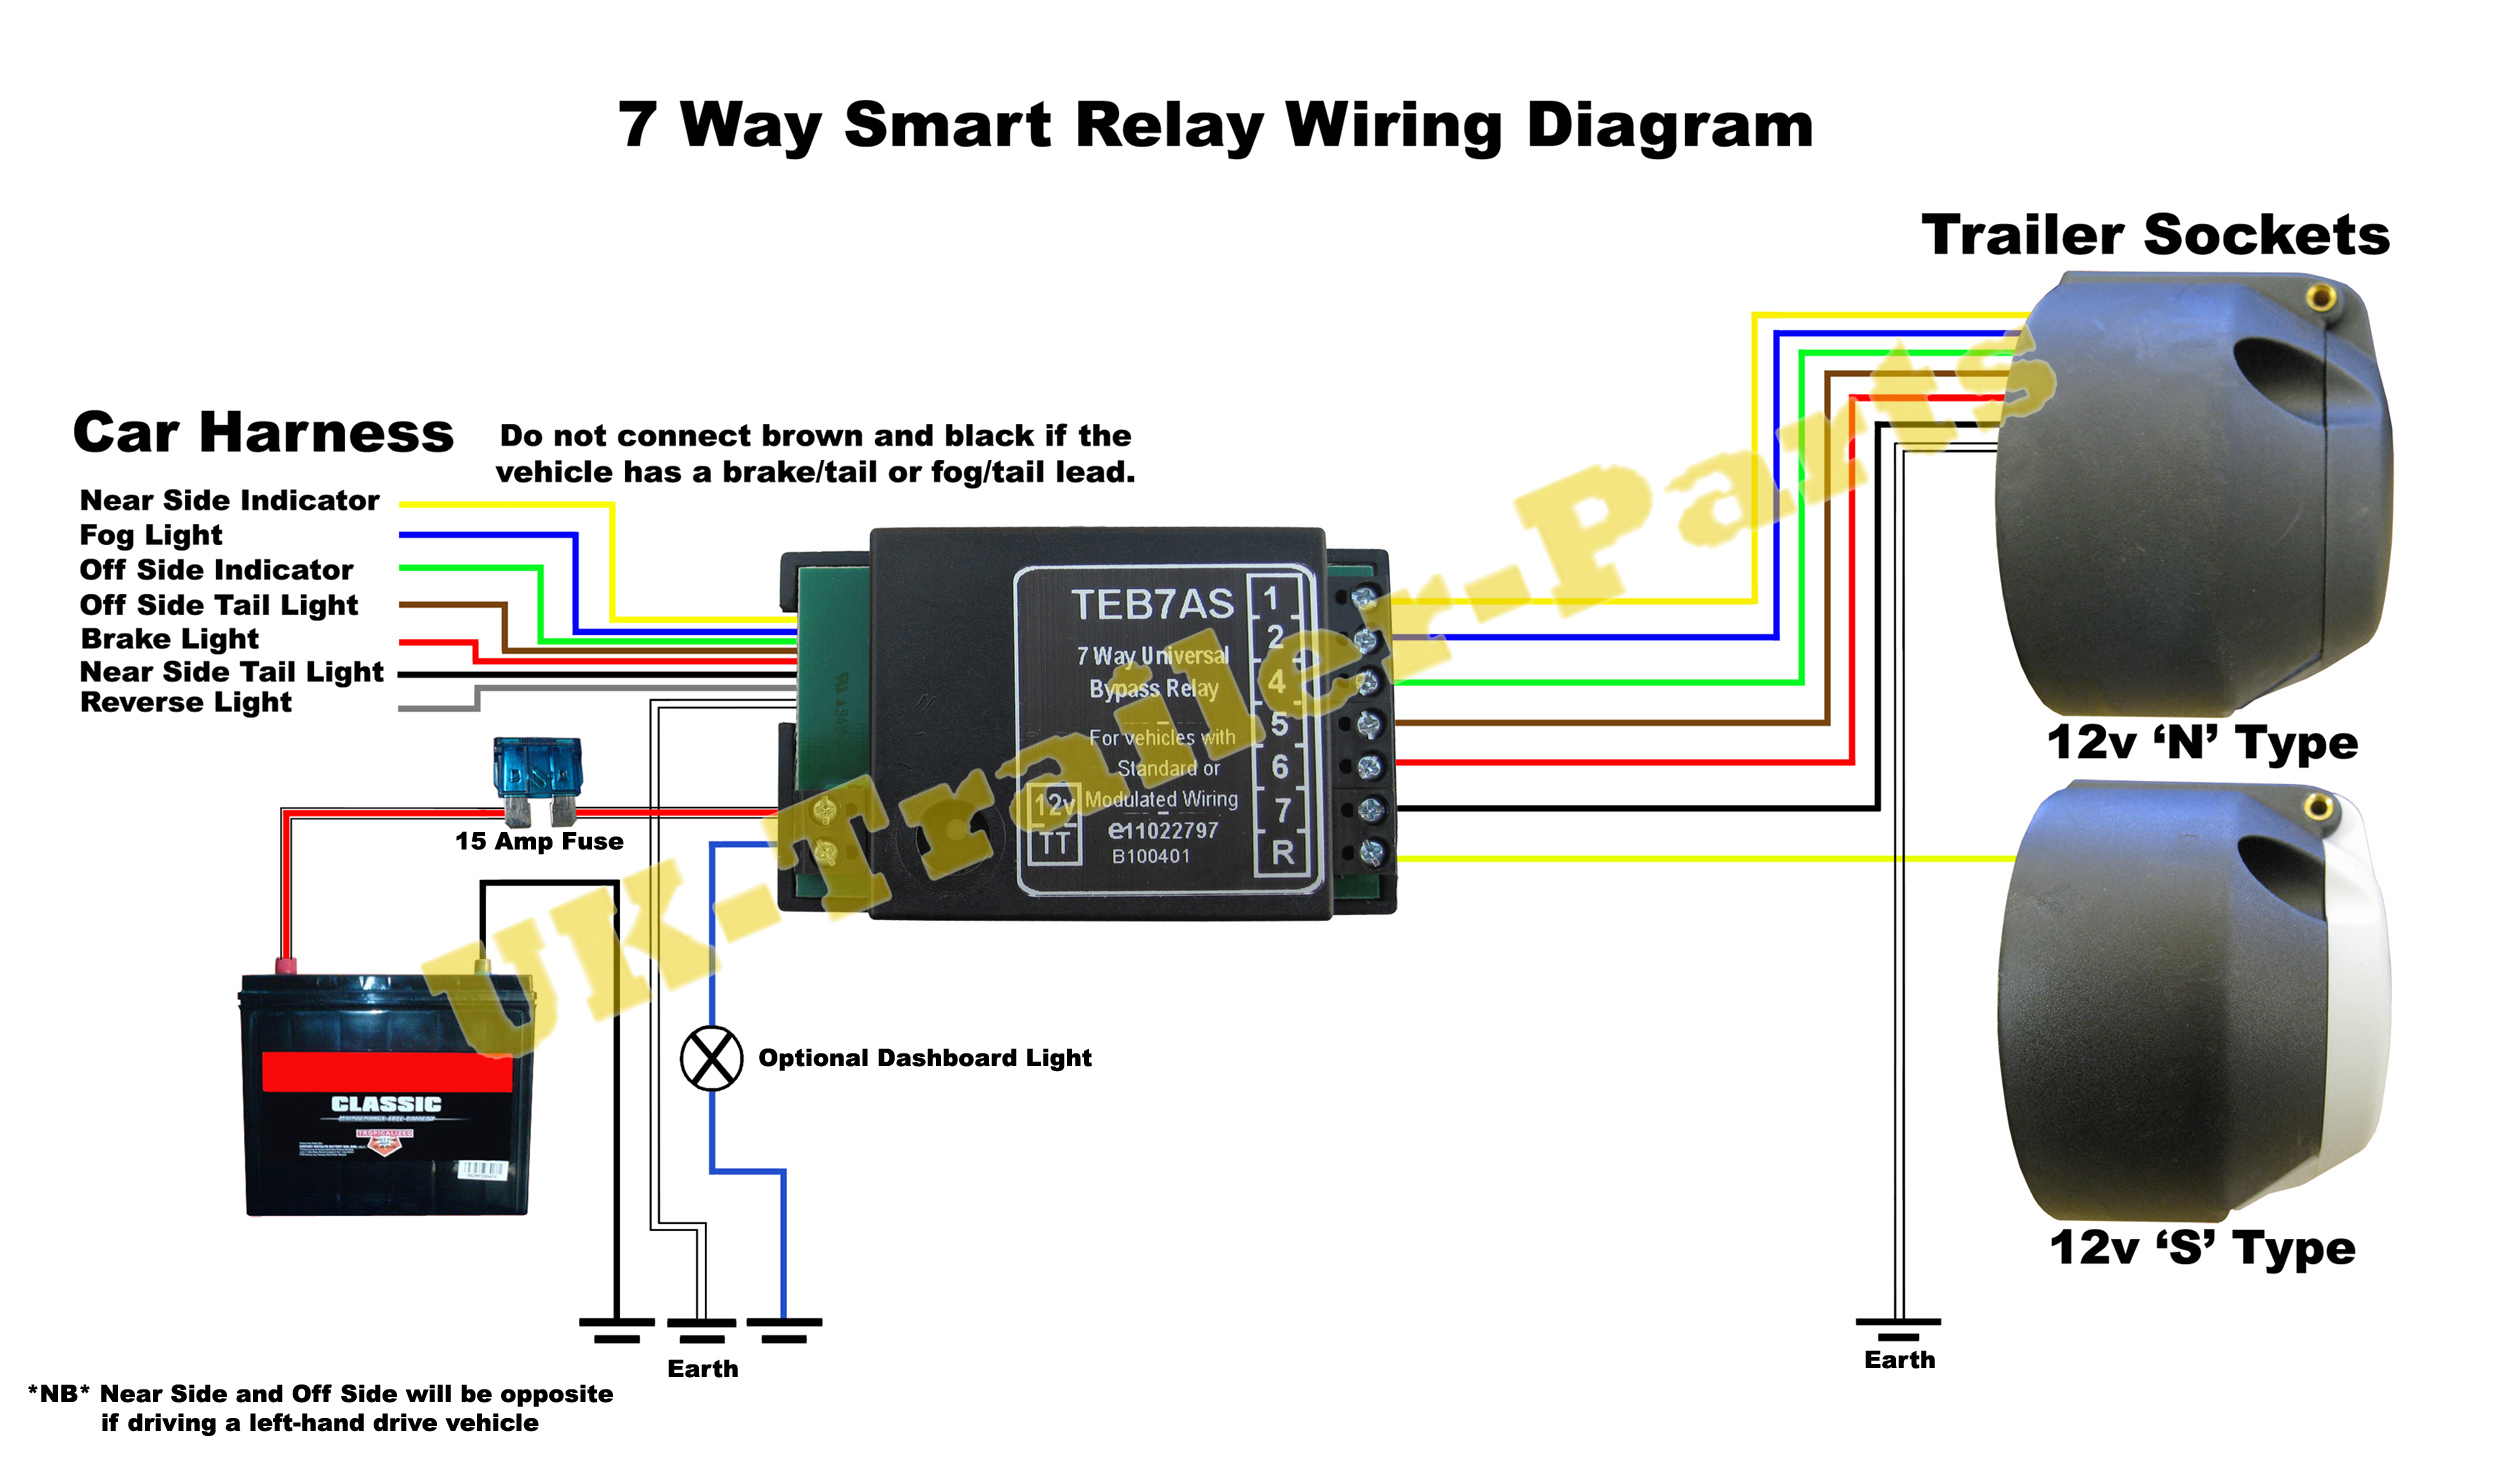 smart relay wiring diagram2 7 way universal bypass relay wiring diagram uk trailer parts vauxhall vectra towbar wiring diagram at alyssarenee.co